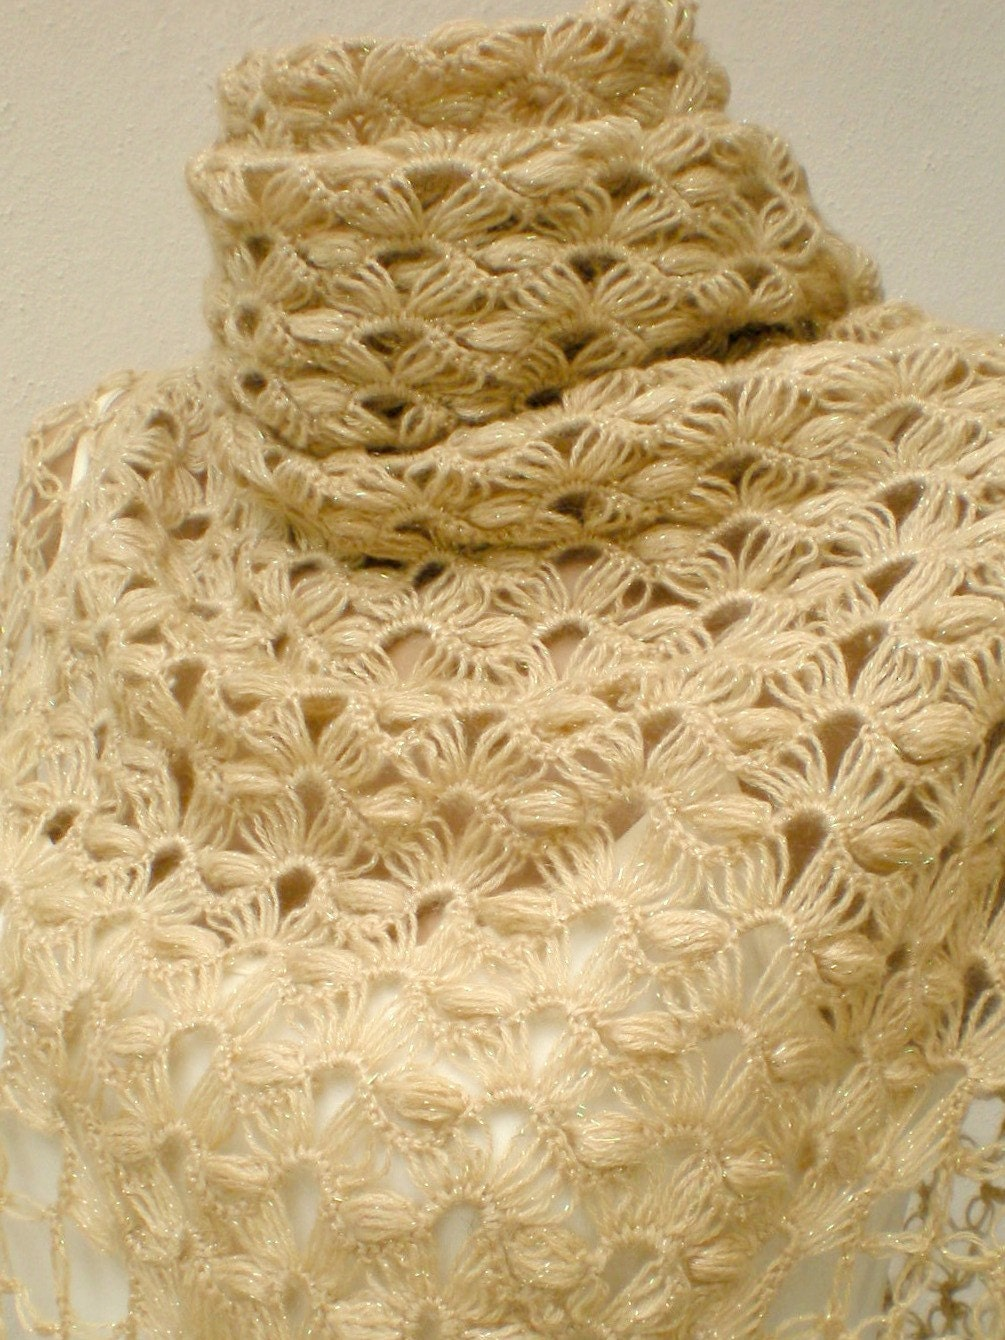 Crocheting By Hand : On Sale Crochet Hand Crocheted Shining Beige by crochetbutterfly